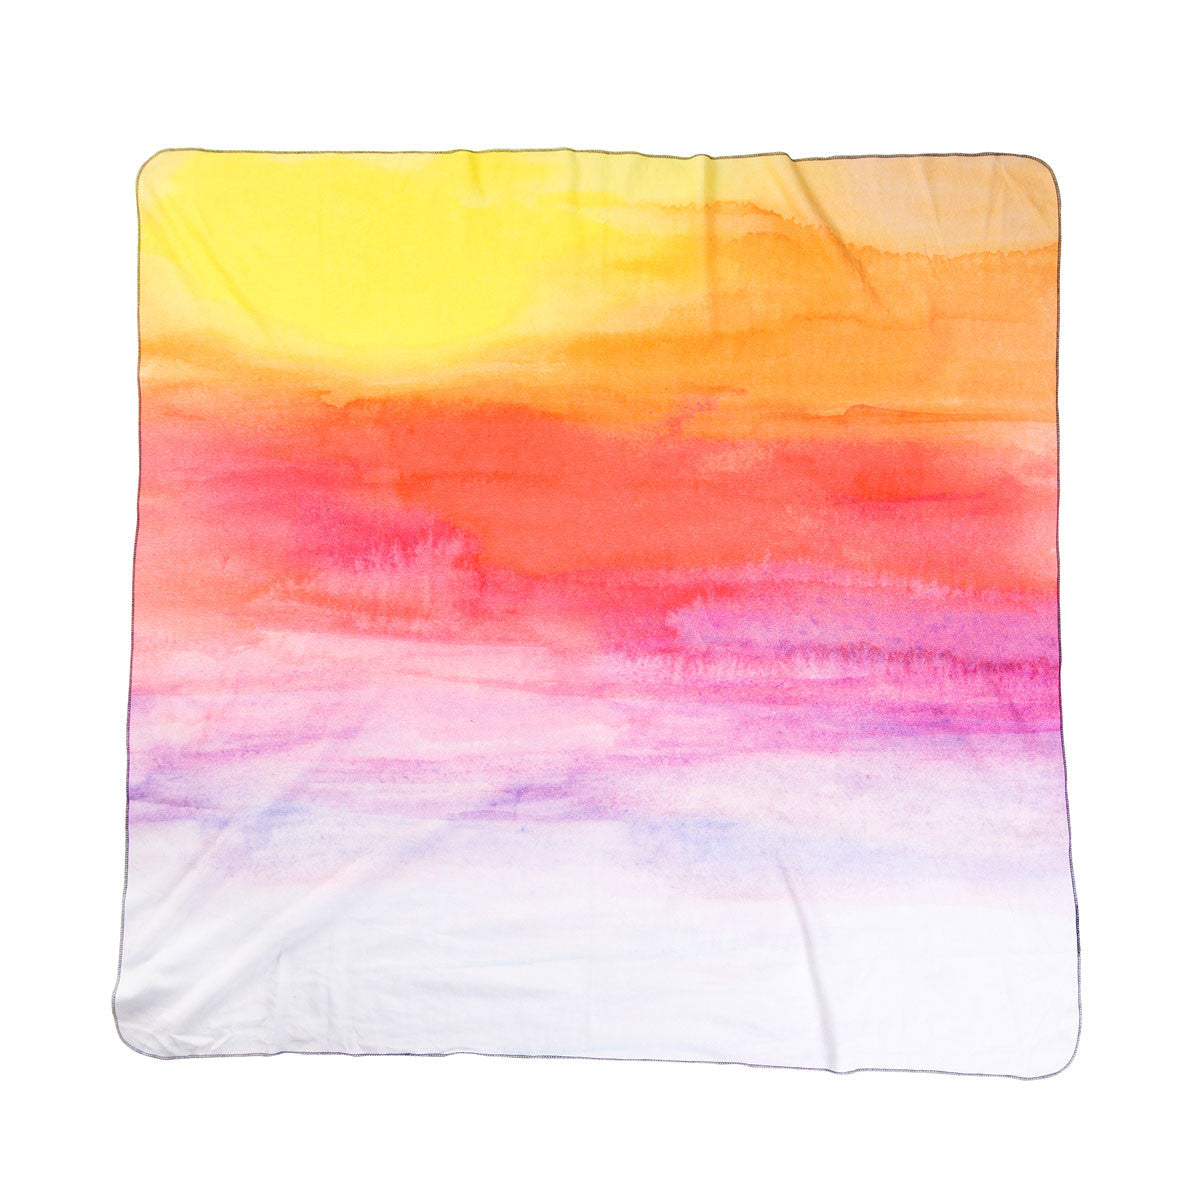 Sapling Child Snuggle Wrap Organic Baby Wrap  Sunset Hour - Sapling Child - Little Earth Nest - 3